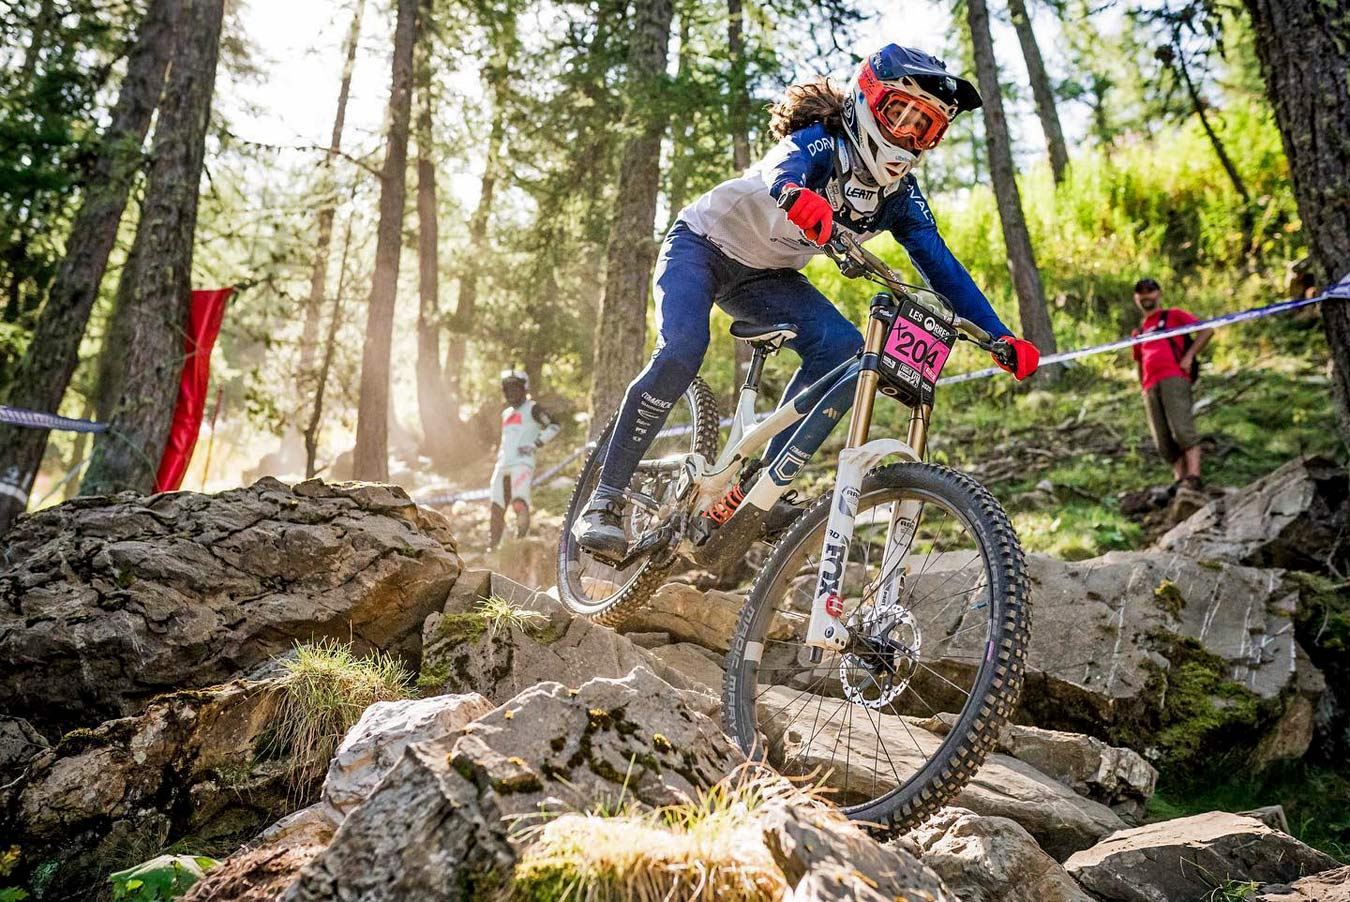 Crankbrothers Synthesis Privateer Program, grassroots racing support, Camille Balanche at Les Orres